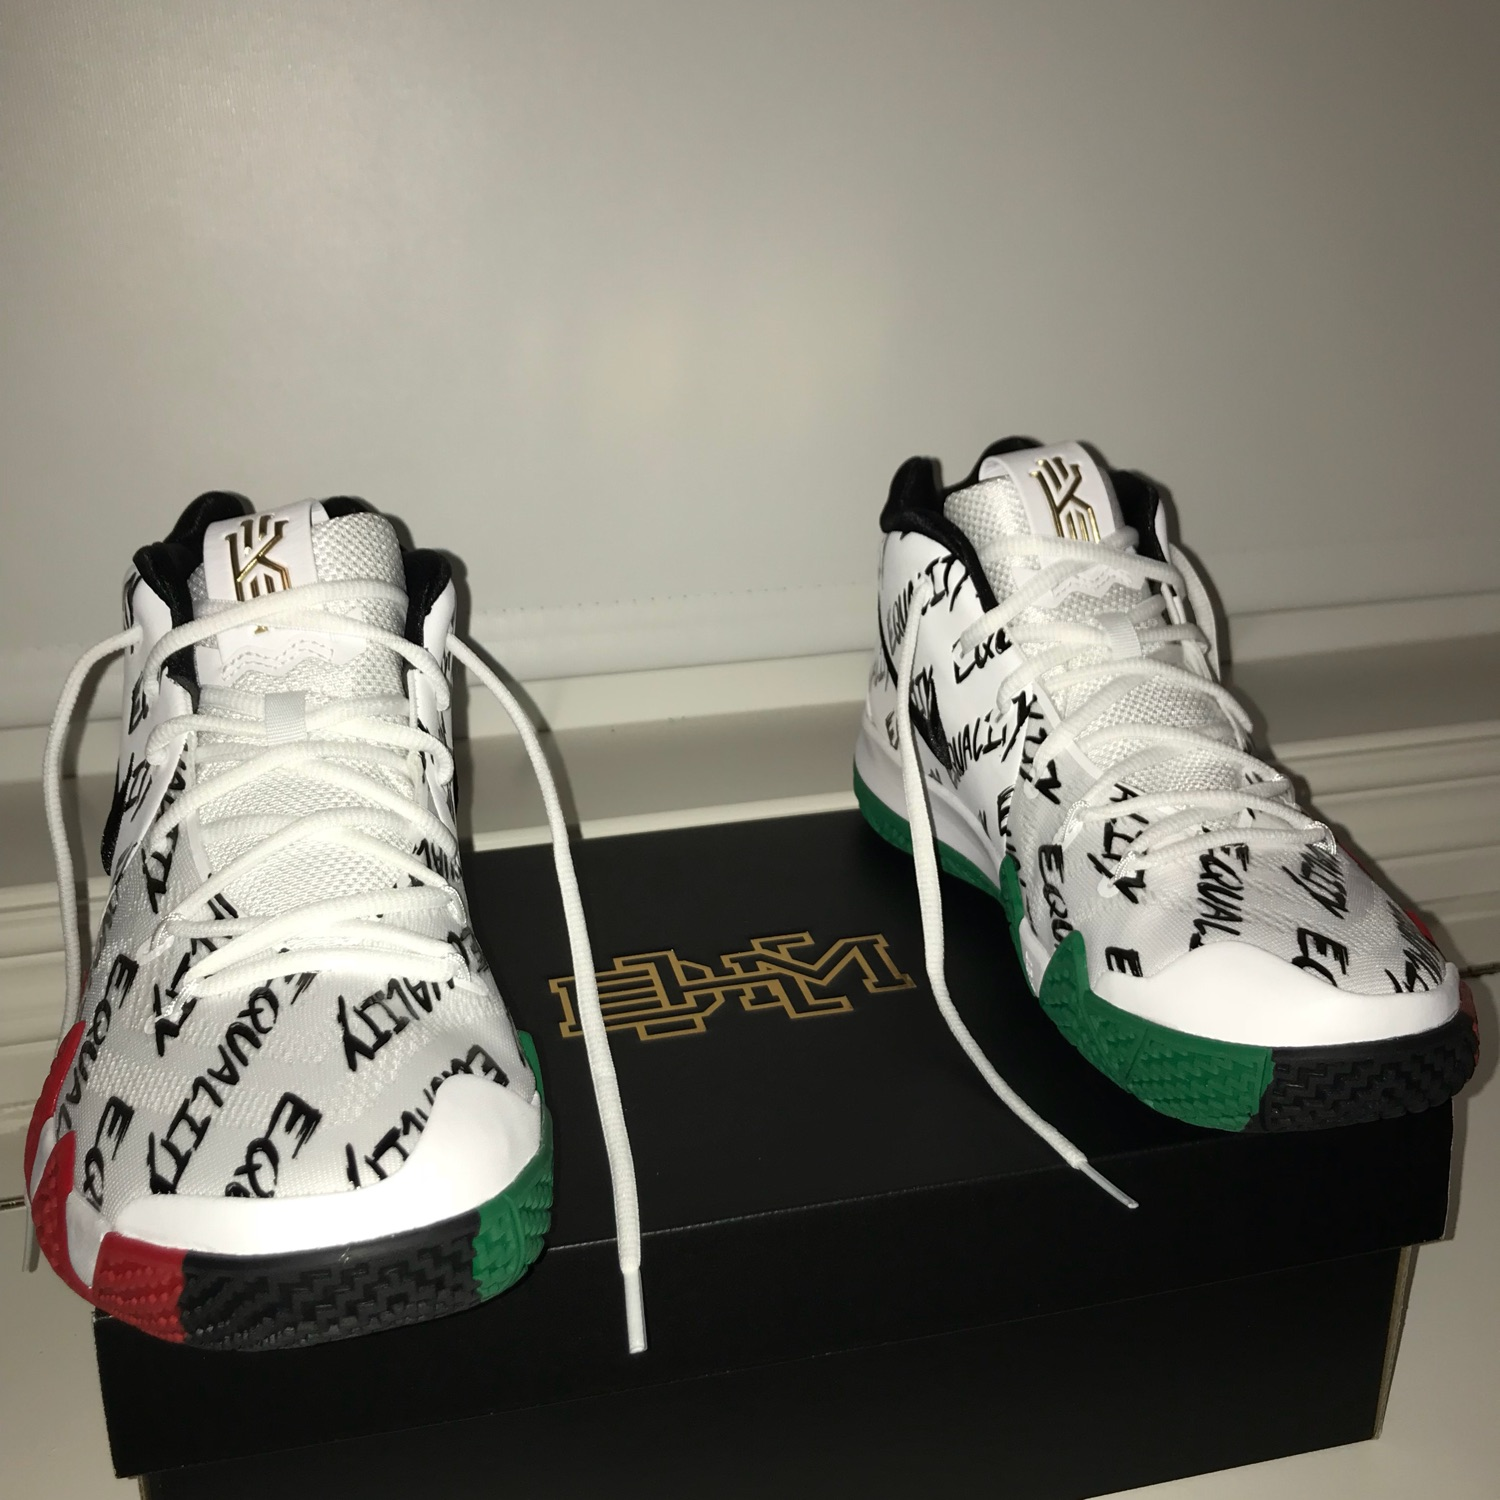 low priced 04c30 15c32 Kyrie 4 Bhm Equality Bhm Size 10.5 2018